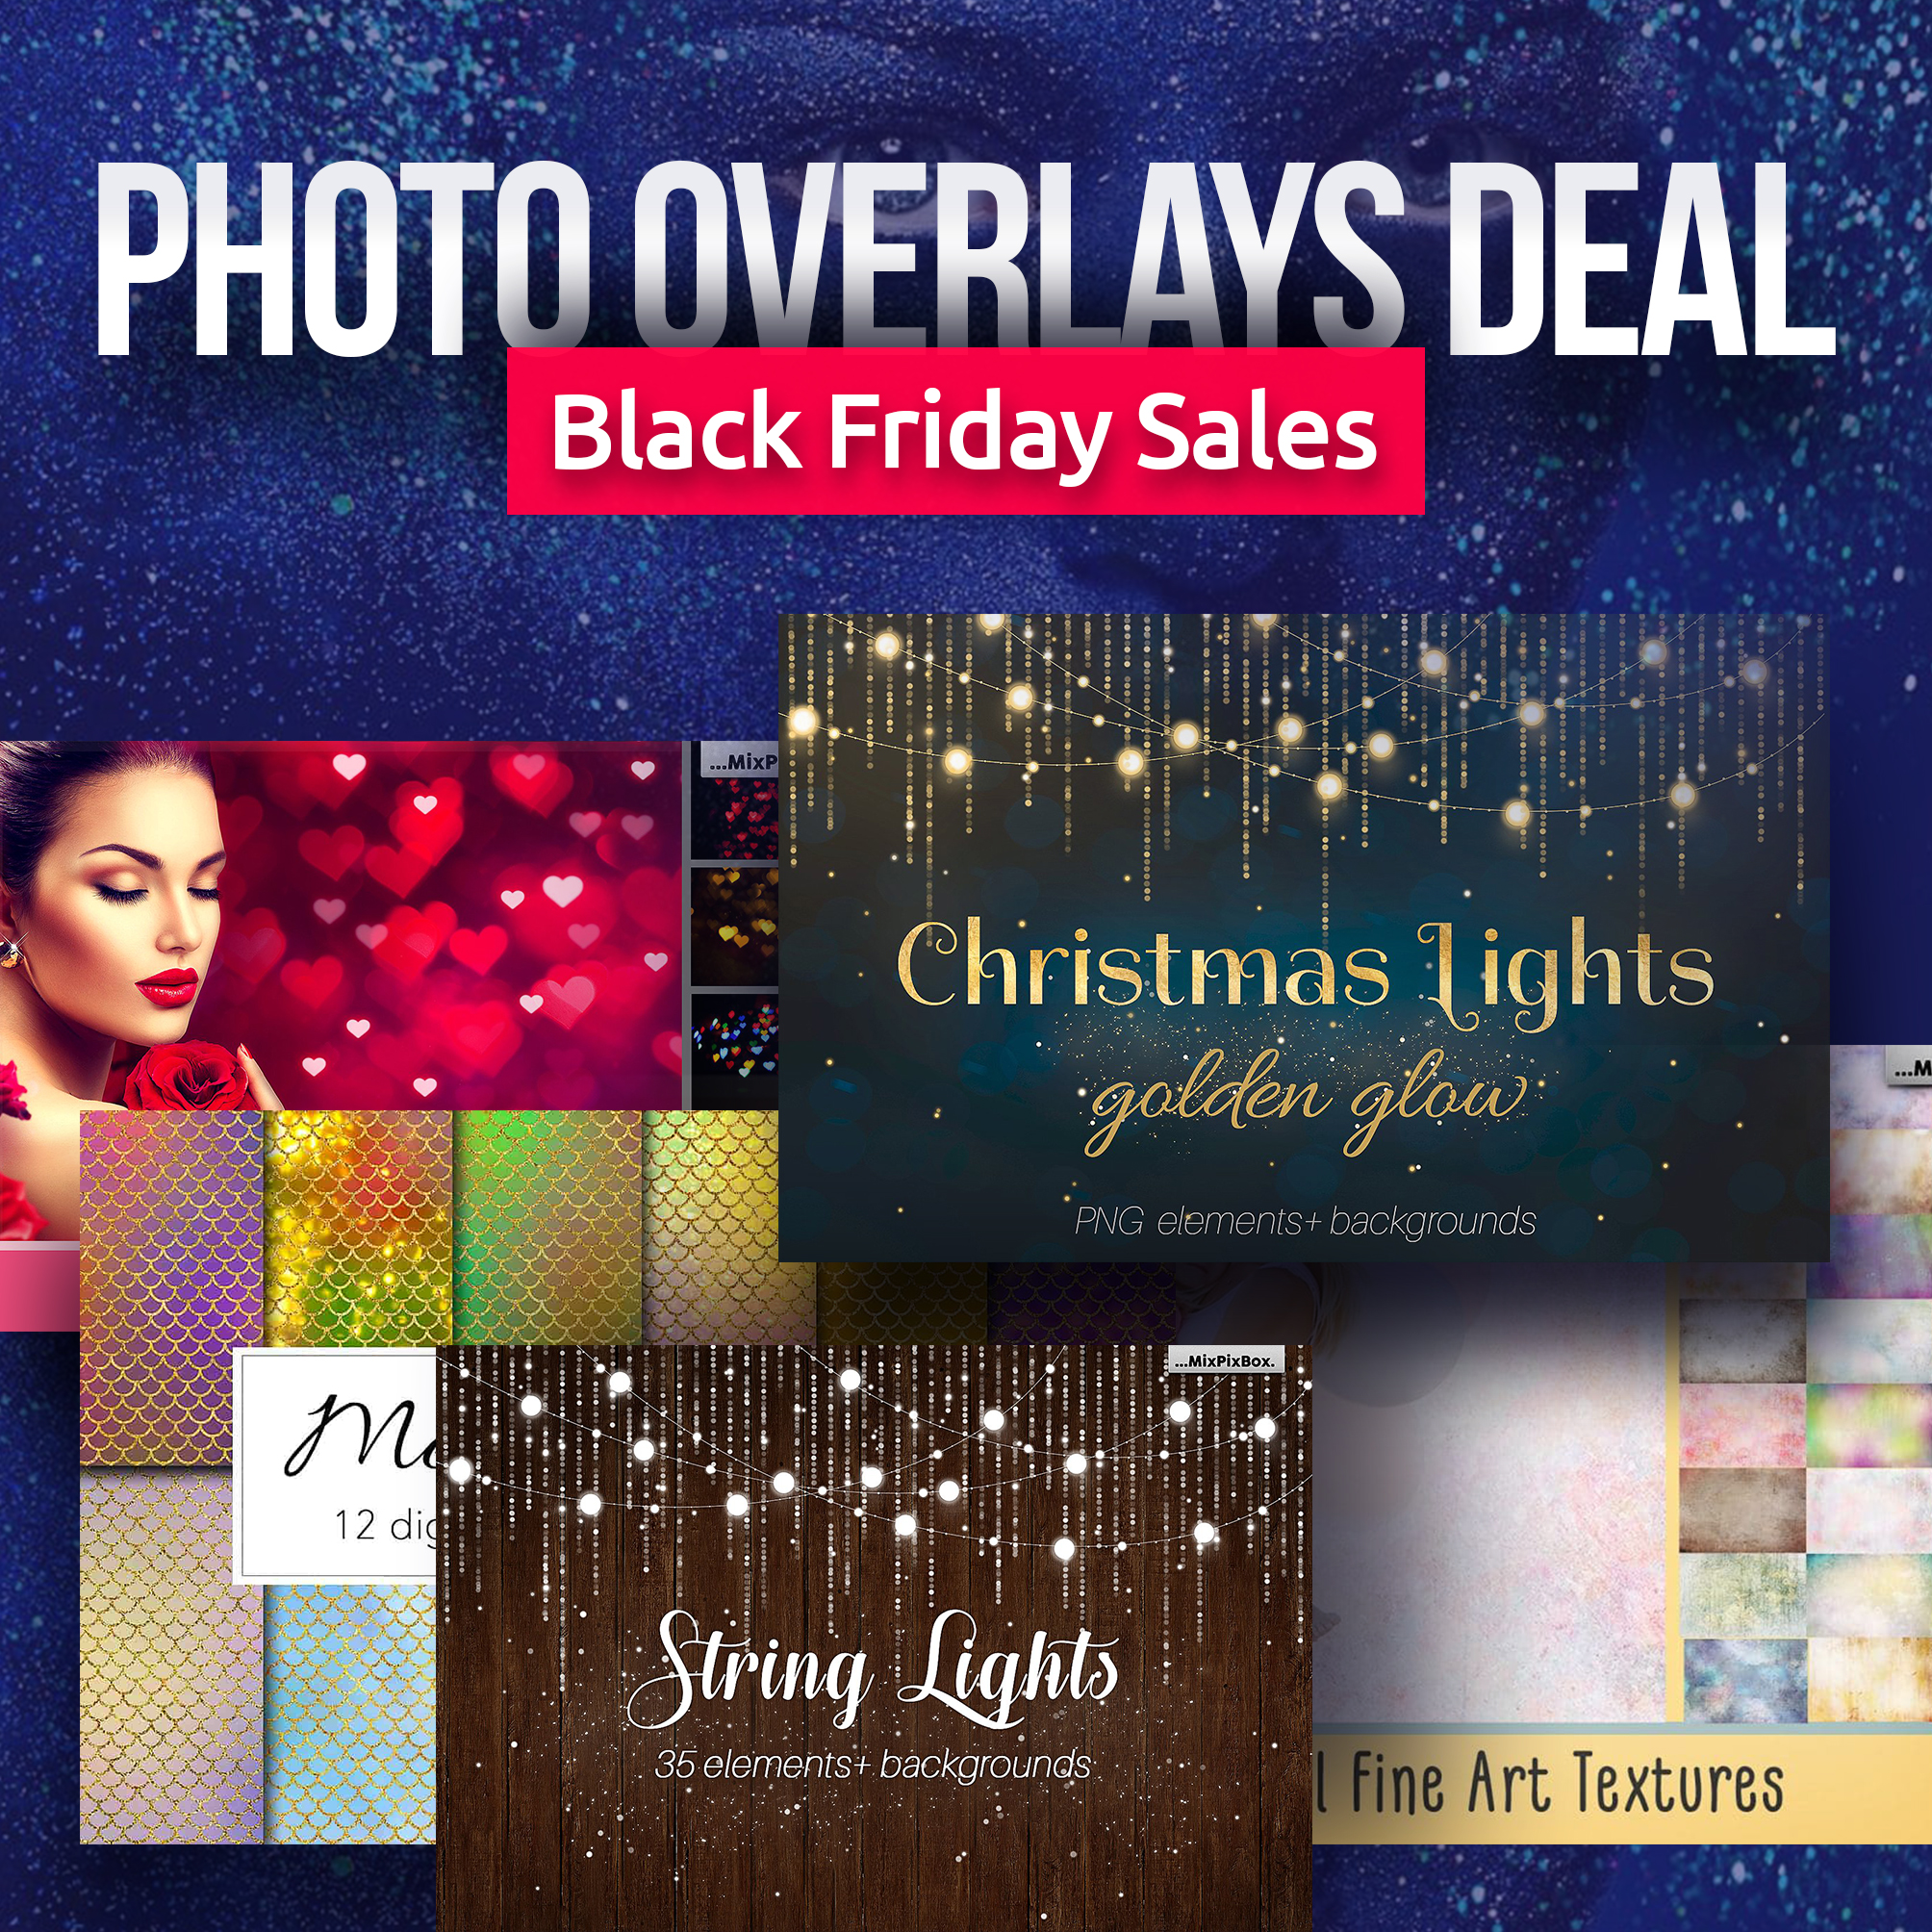 60+ Best Black Friday and Cyber Monday Deals 2020. For Designers, Artists and Developers - Black Friday Mega Photo Overlays Deal 1